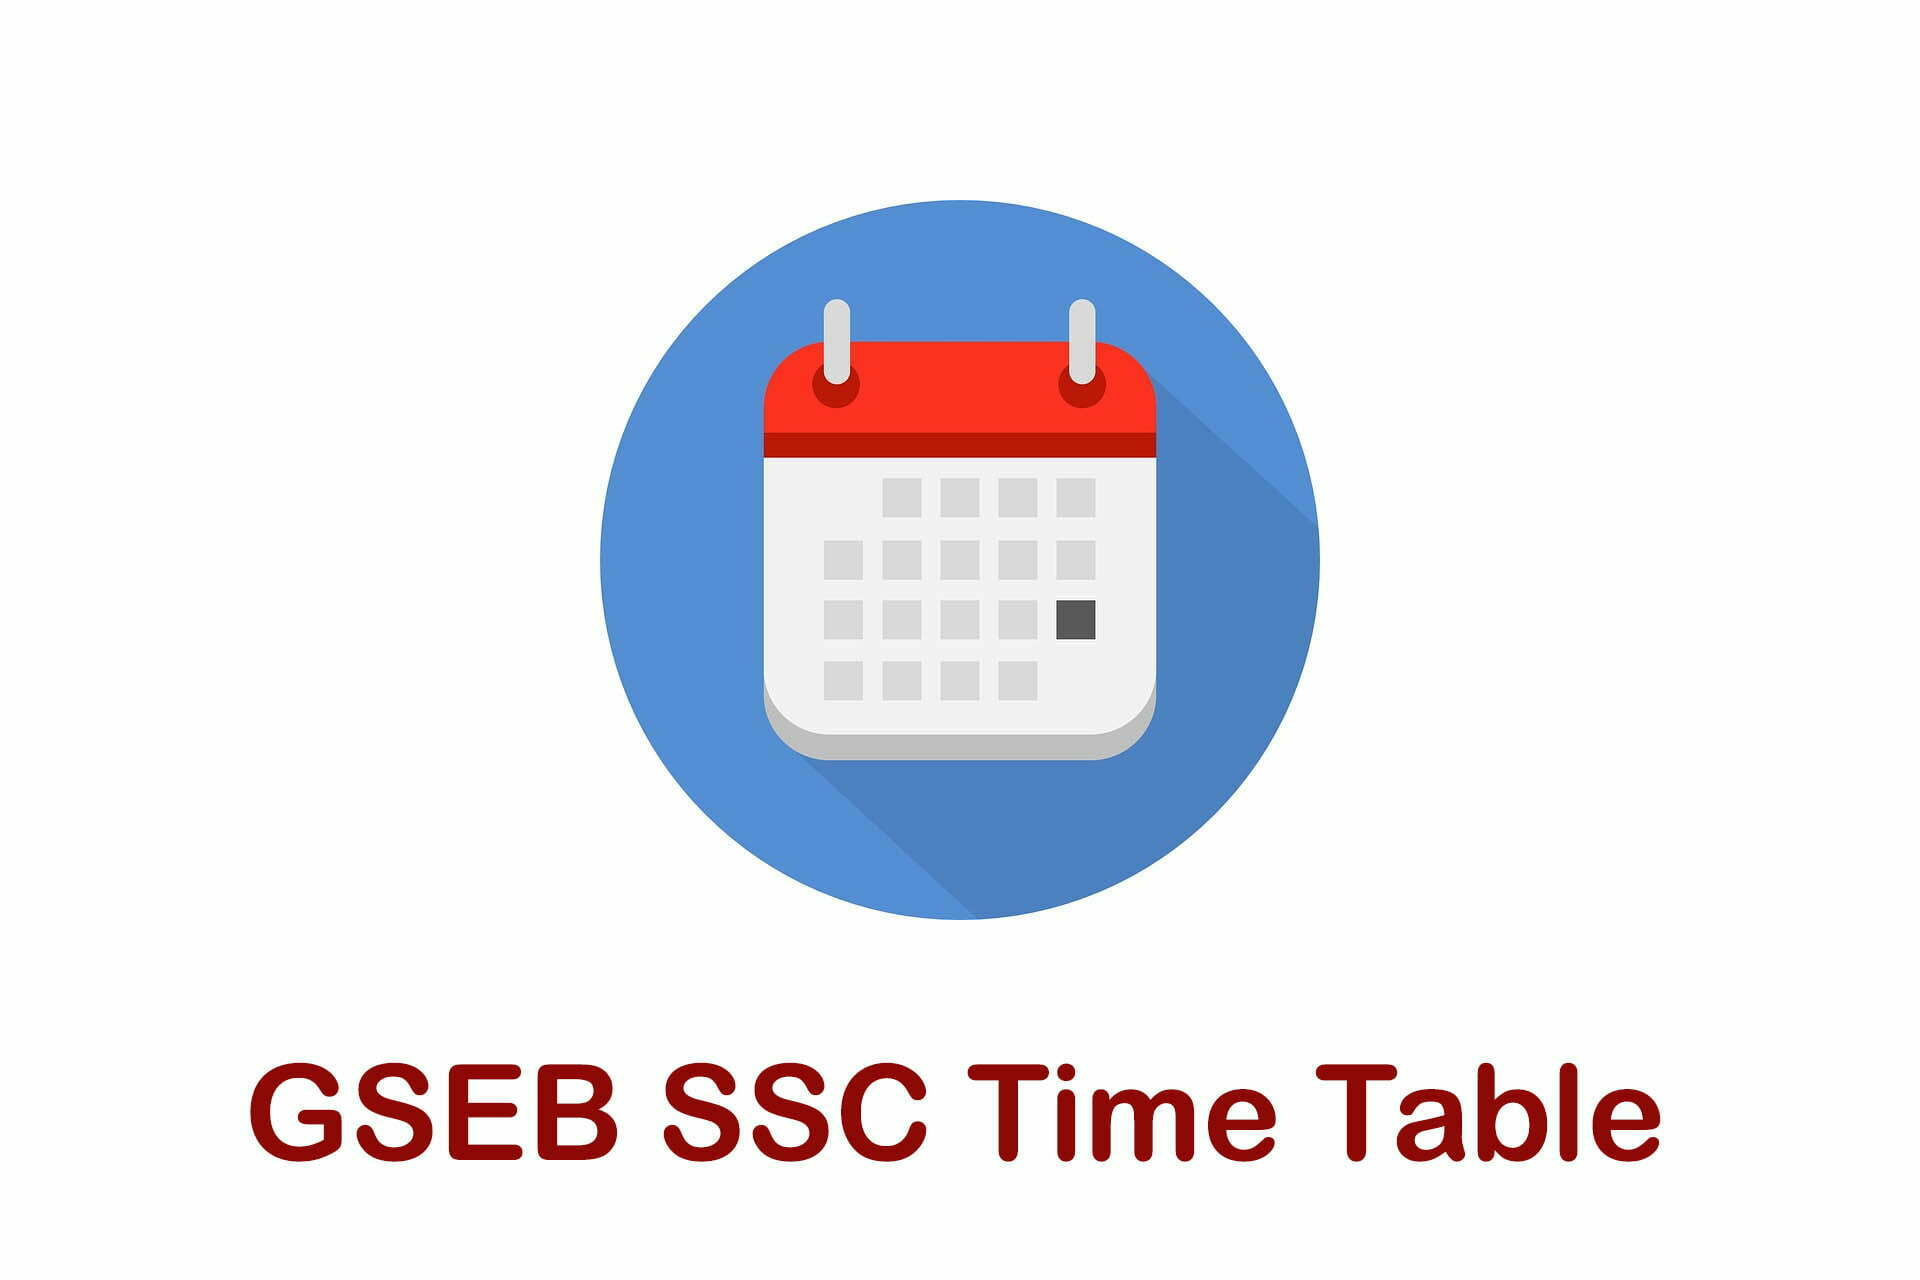 GSEB SSC Time Table 2020 : Download Gujarat Board 10th Date Sheet 2020 PDF